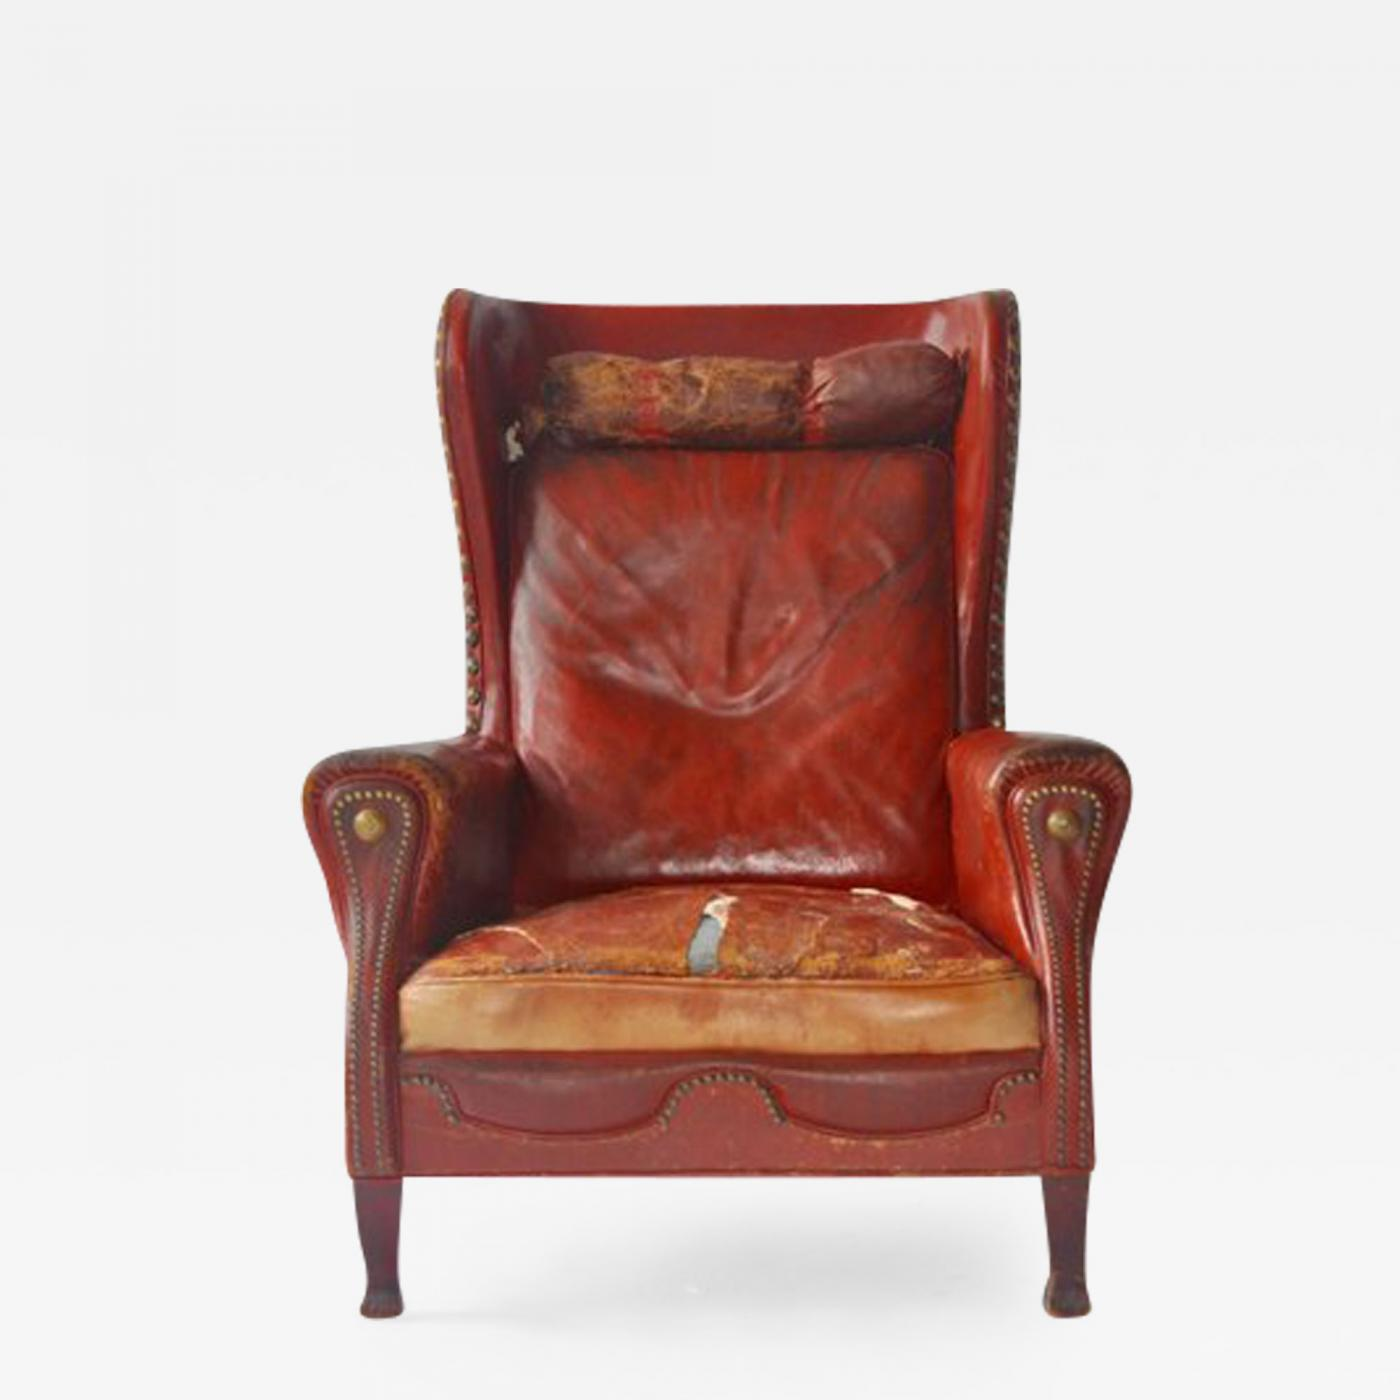 Leather Lounge Otto Schulz Leather Lounge Chair By Otto Schulz